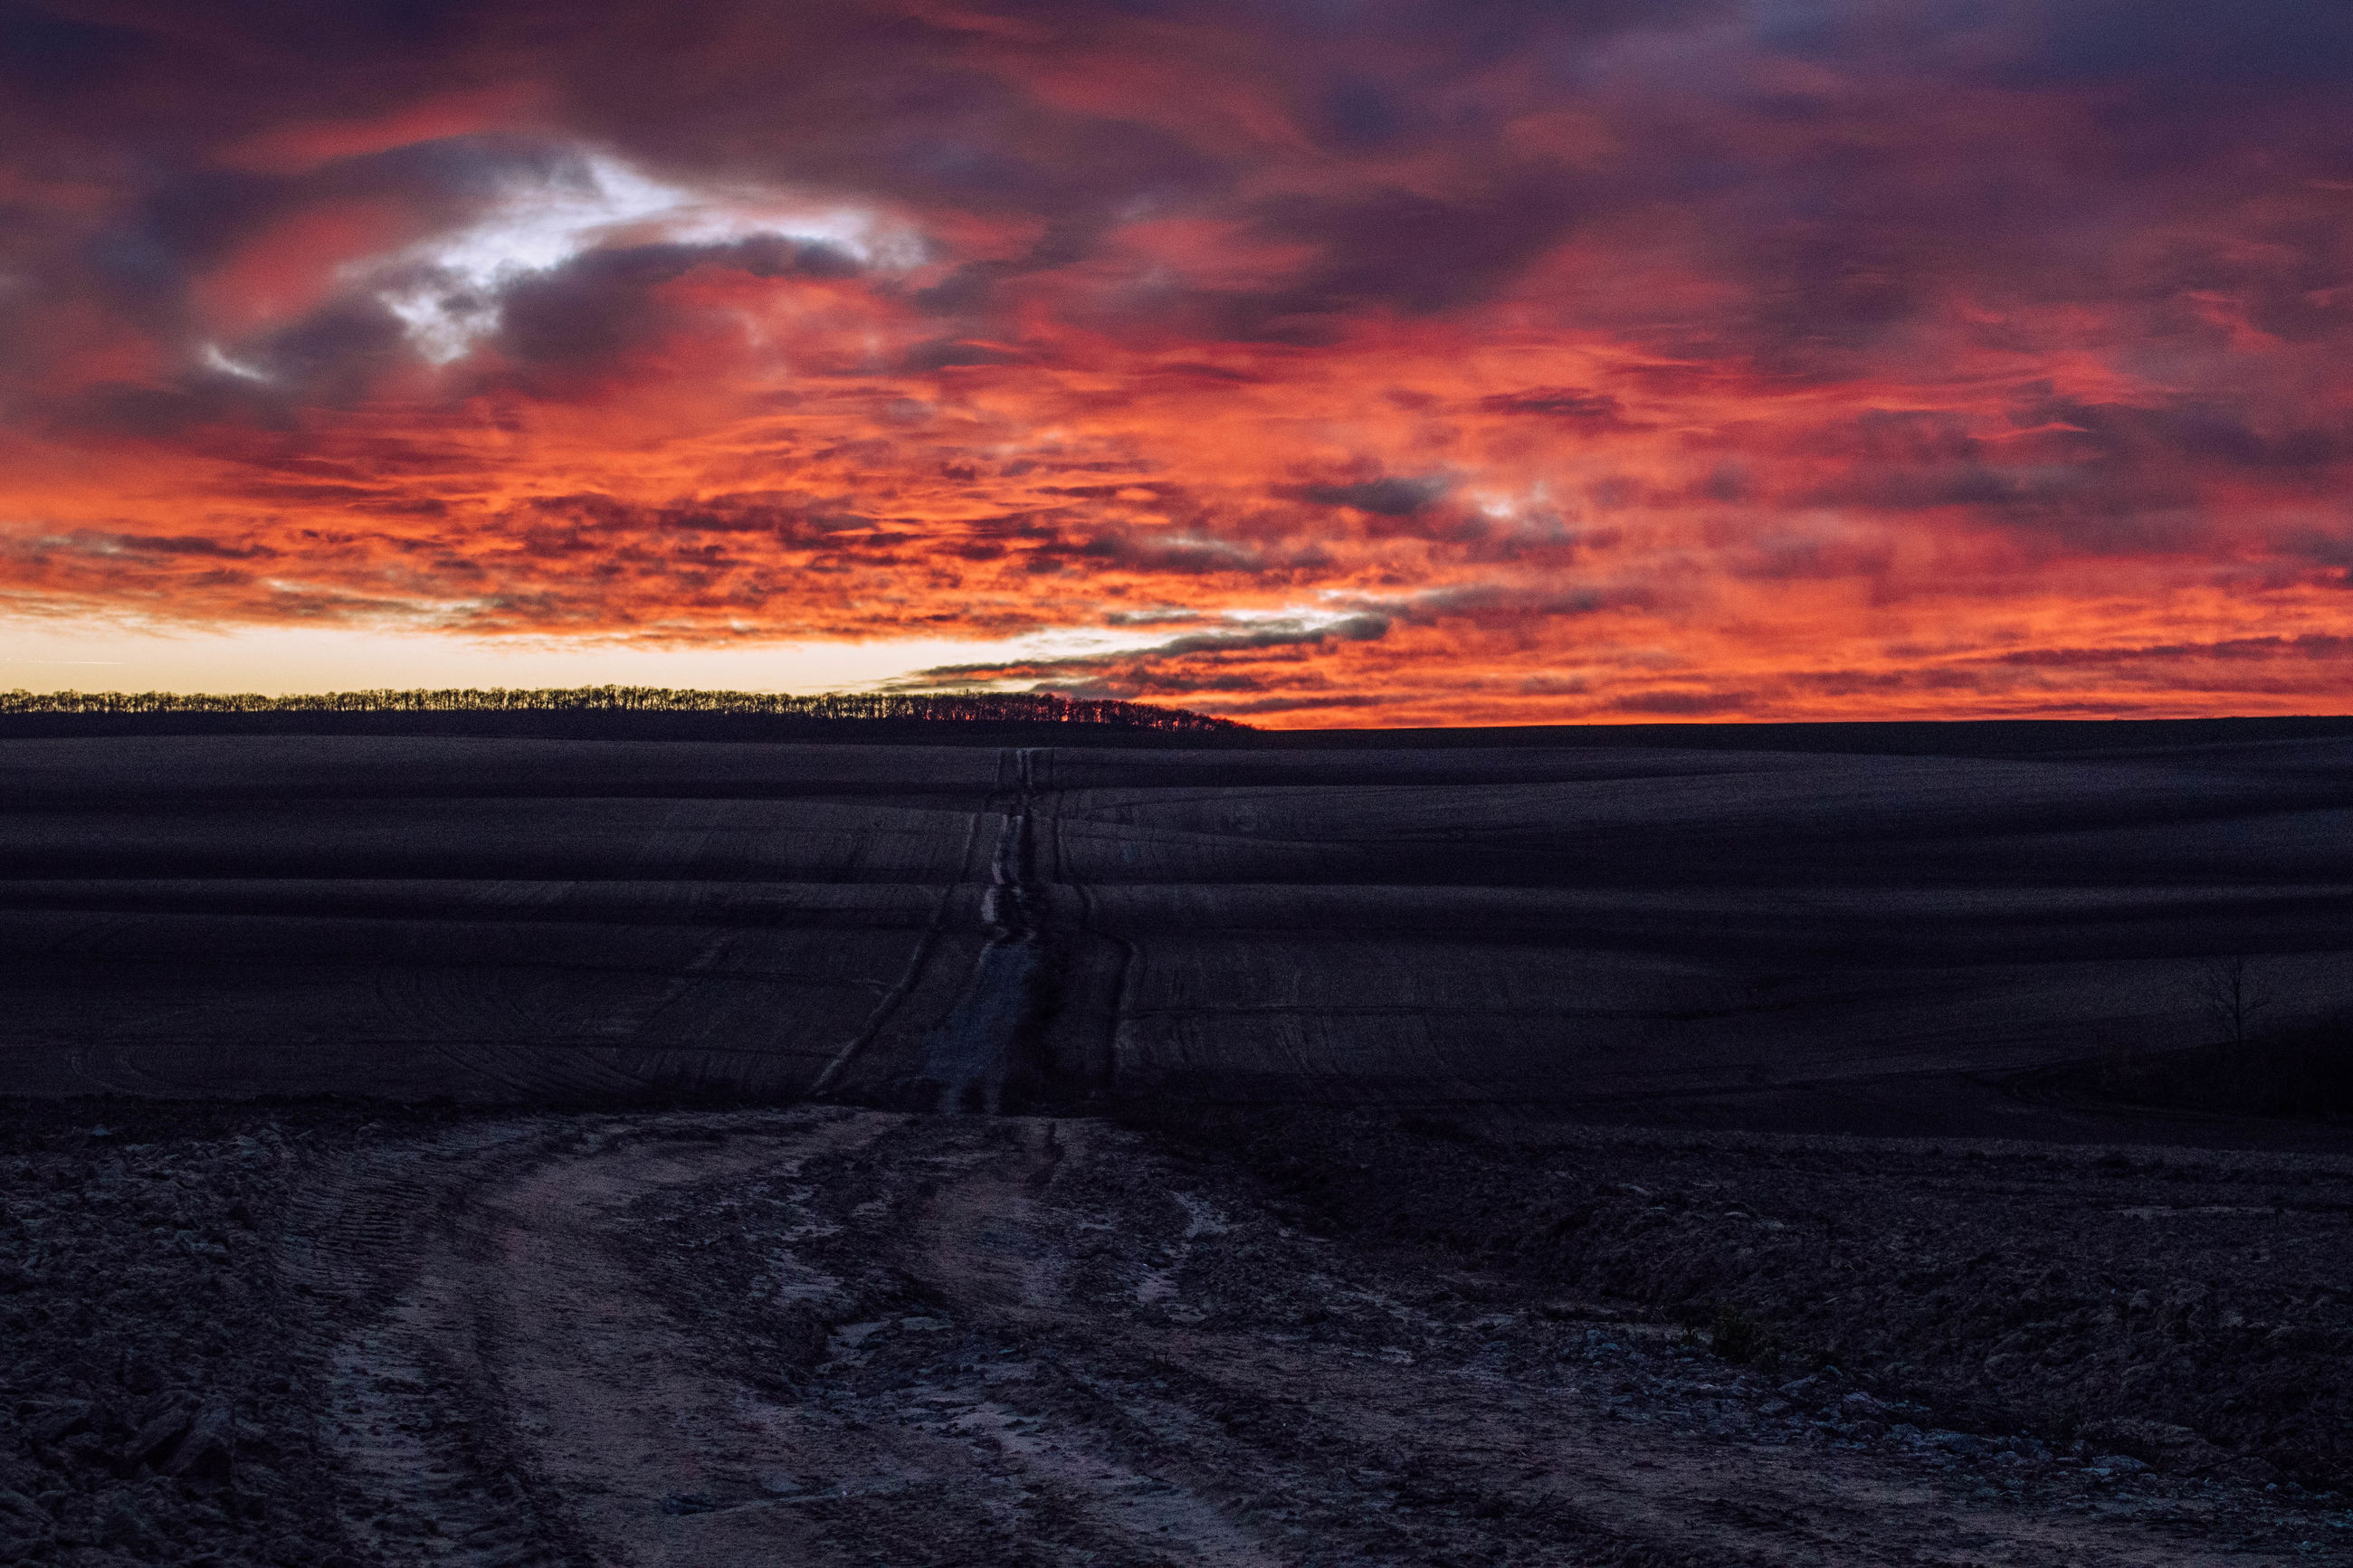 Scenic view of dramatic sky over land